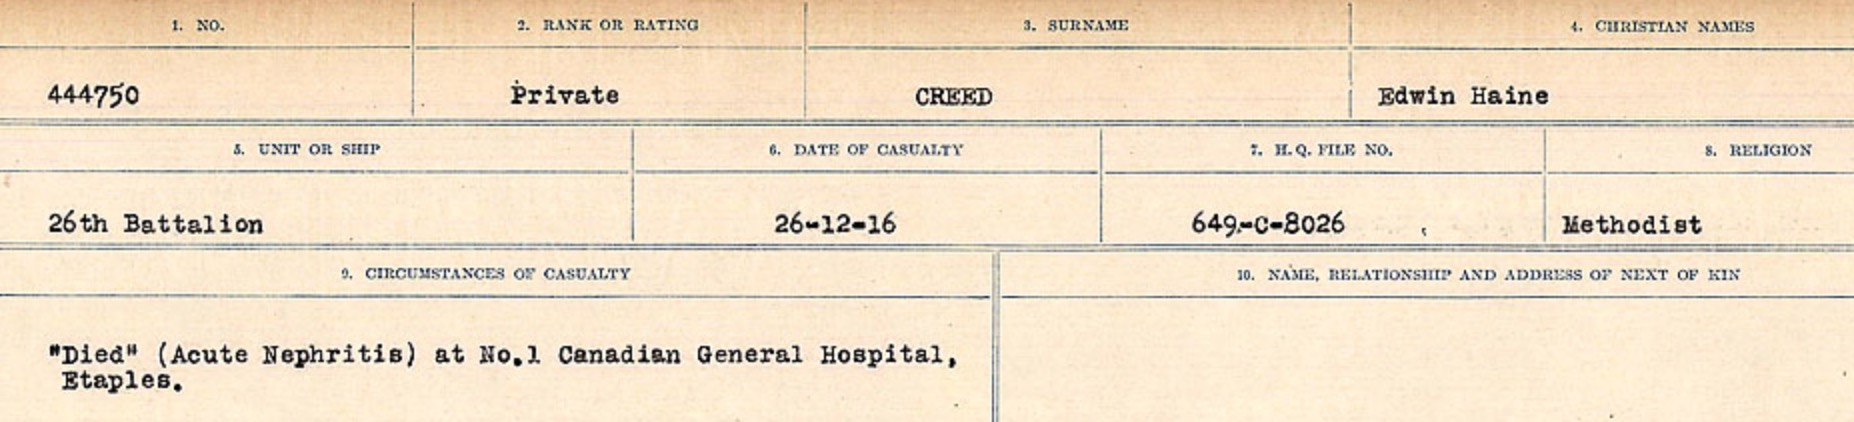 Circumstances of death registers– Source: Library and Archives Canada. CIRCUMSTANCES OF DEATH REGISTERS, FIRST WORLD WAR Surnames: CRABB TO CROSSLAND Microform Sequence 24; Volume Number 31829_B016733. Reference RG150, 1992-93/314, 168. Page 435 of 788.